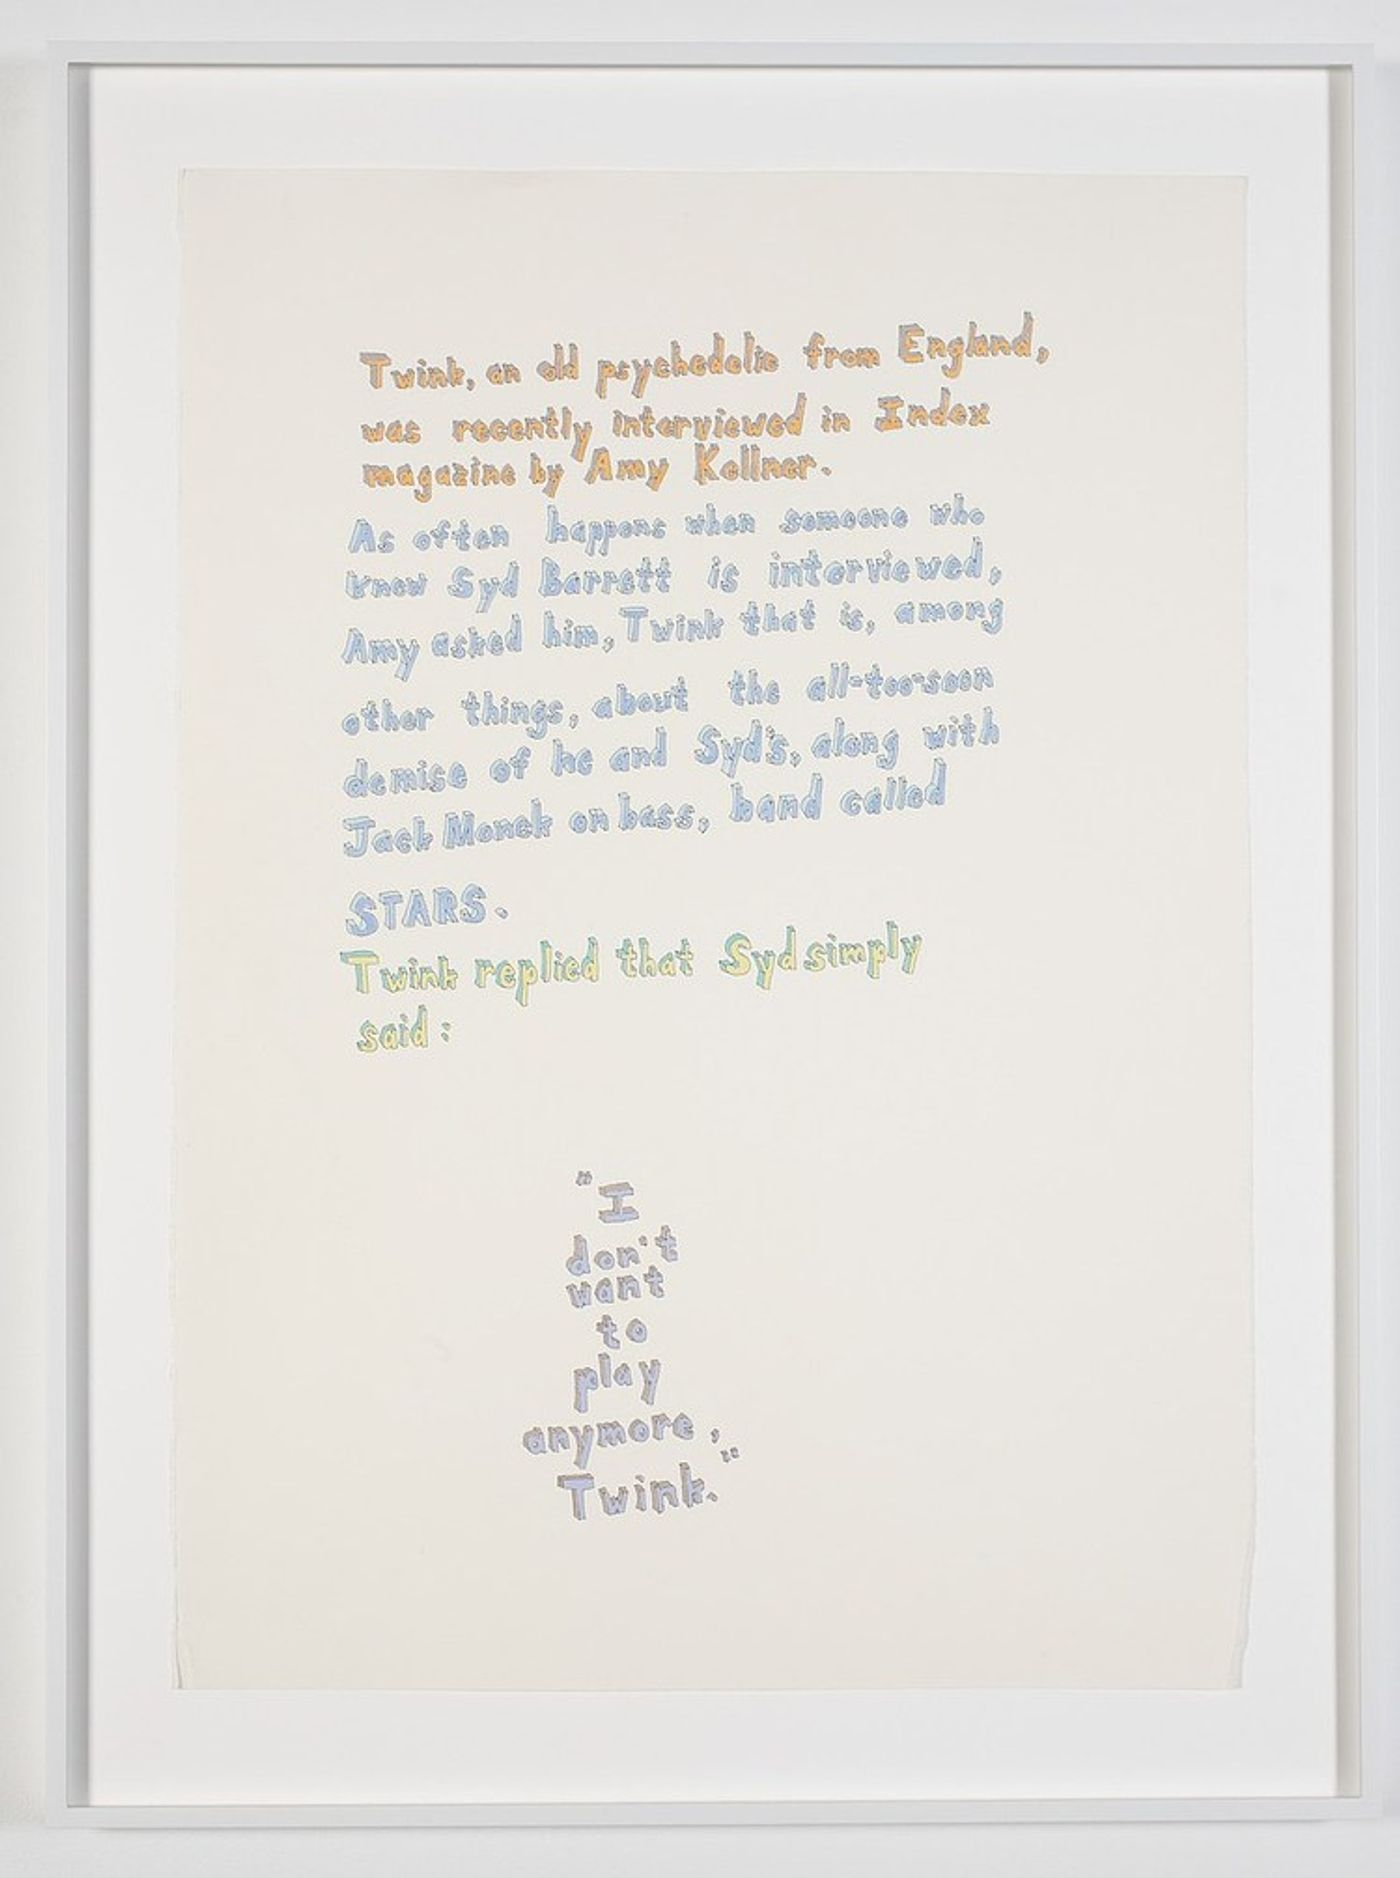 Richard Aldrich, I Don't Want To Play Anymore, Twink, 2000. Acrylic and pen on paper, Unframed: 29 1/4 x 20 3/4 in (74.3 x 52.7cm), Framed: 33 7/8 x 25 3/8 x 1 3/8 in (86 x 64.5 x 3.5cm).